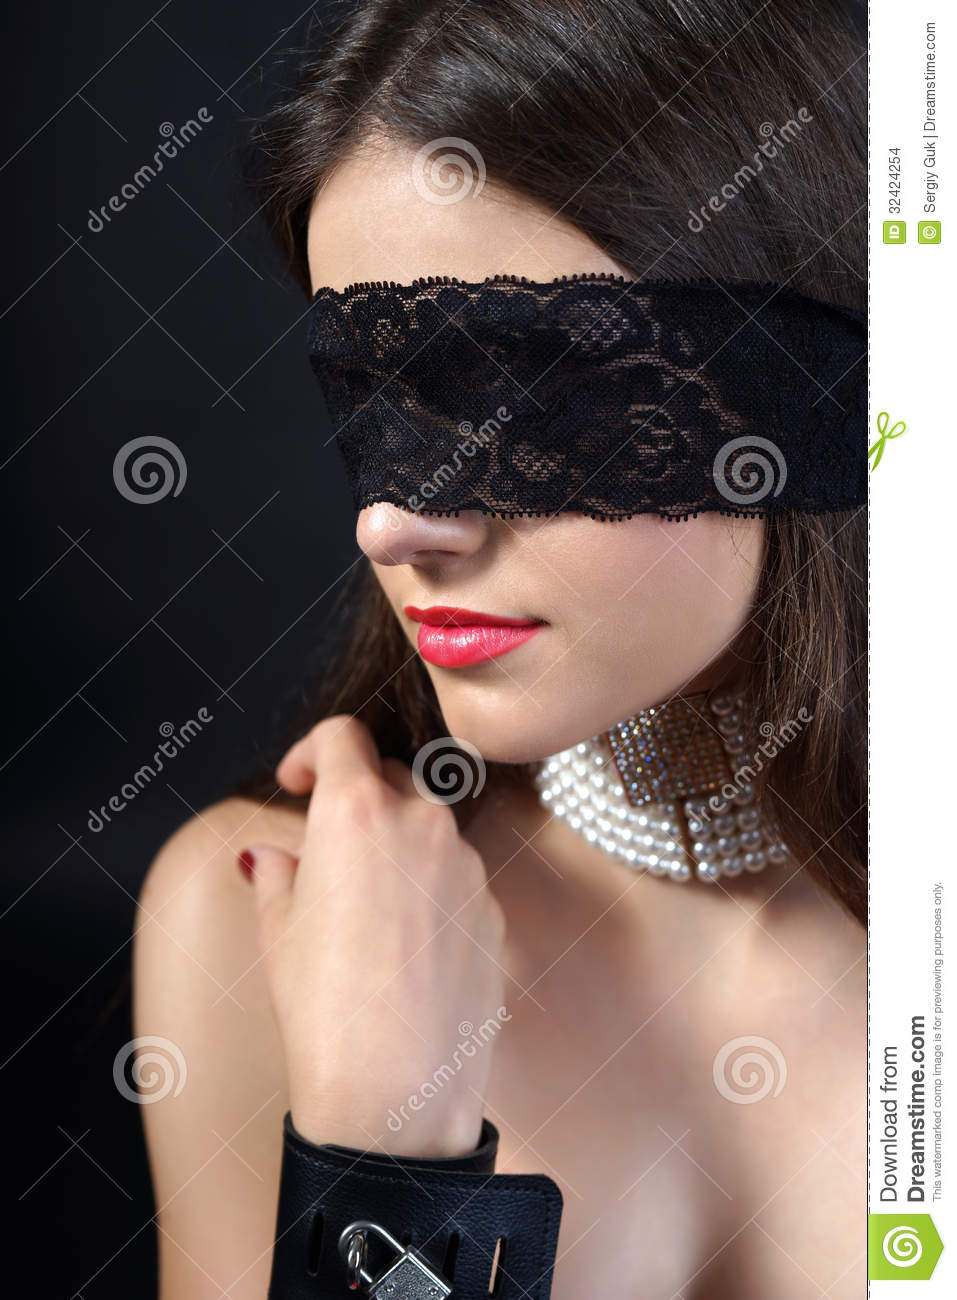 Dark Red Hair And Brown Eyes Girl Blindfolded Stock Photo Image Of Beautiful Beads